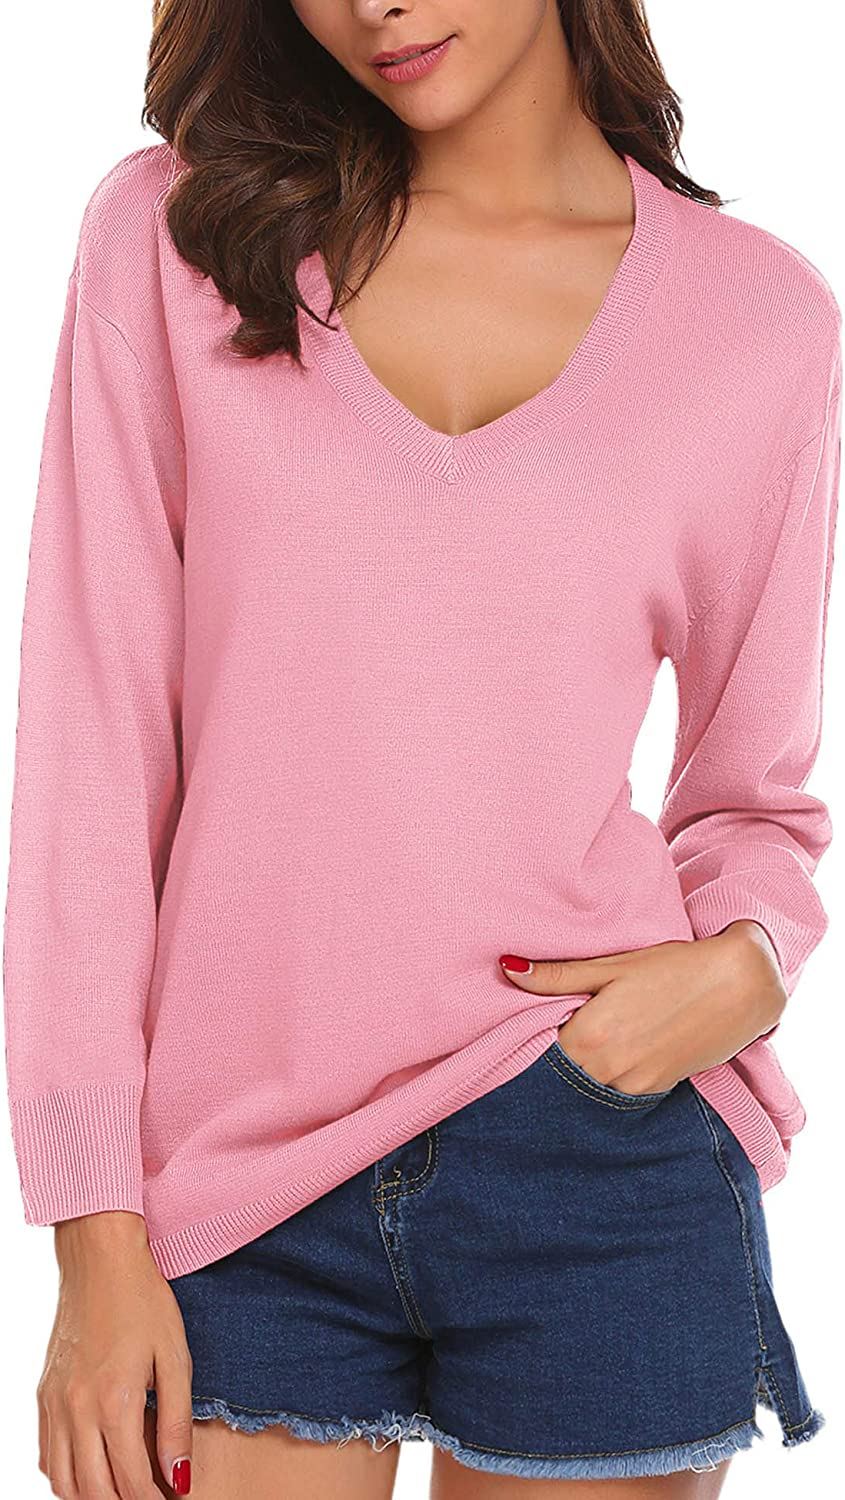 UNibelle Womens V Neck Sweaters Loose Oversized Light Weight Knit Sexy Pullover Top Sweatershirt